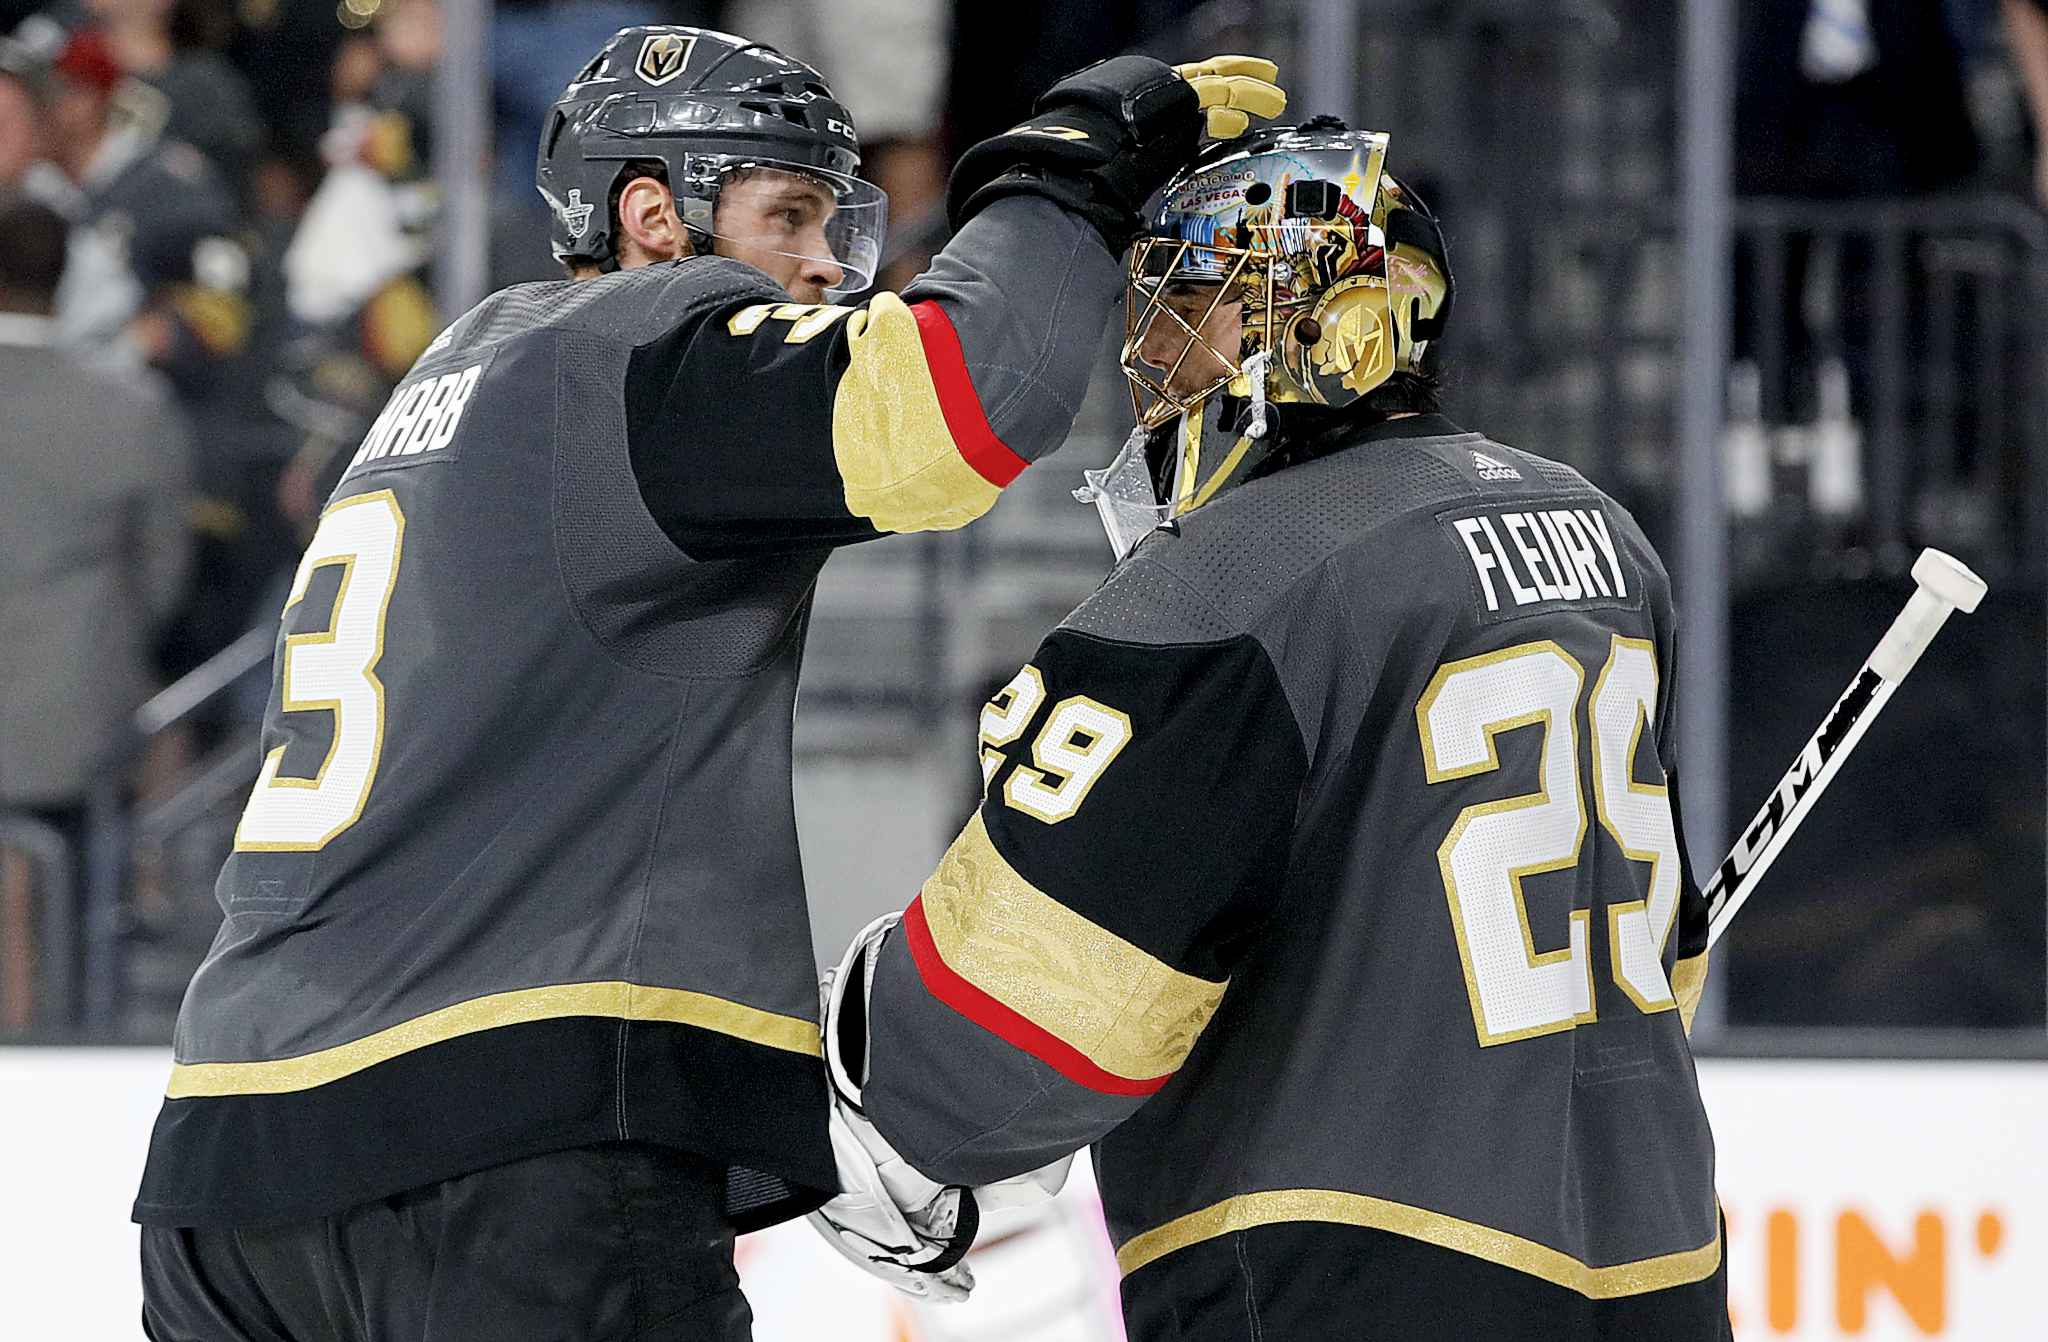 Vegas Golden Knights defenseman Brayden McNabb, left, celebrates with goaltender Marc-Andre Fleury after the team's 4-2 win against the Winnipeg Jets during Game 3 of the NHL hockey playoffs Western Conference finals Wednesday, May 16, 2018, in Las Vegas. (AP Photo/John Locher)